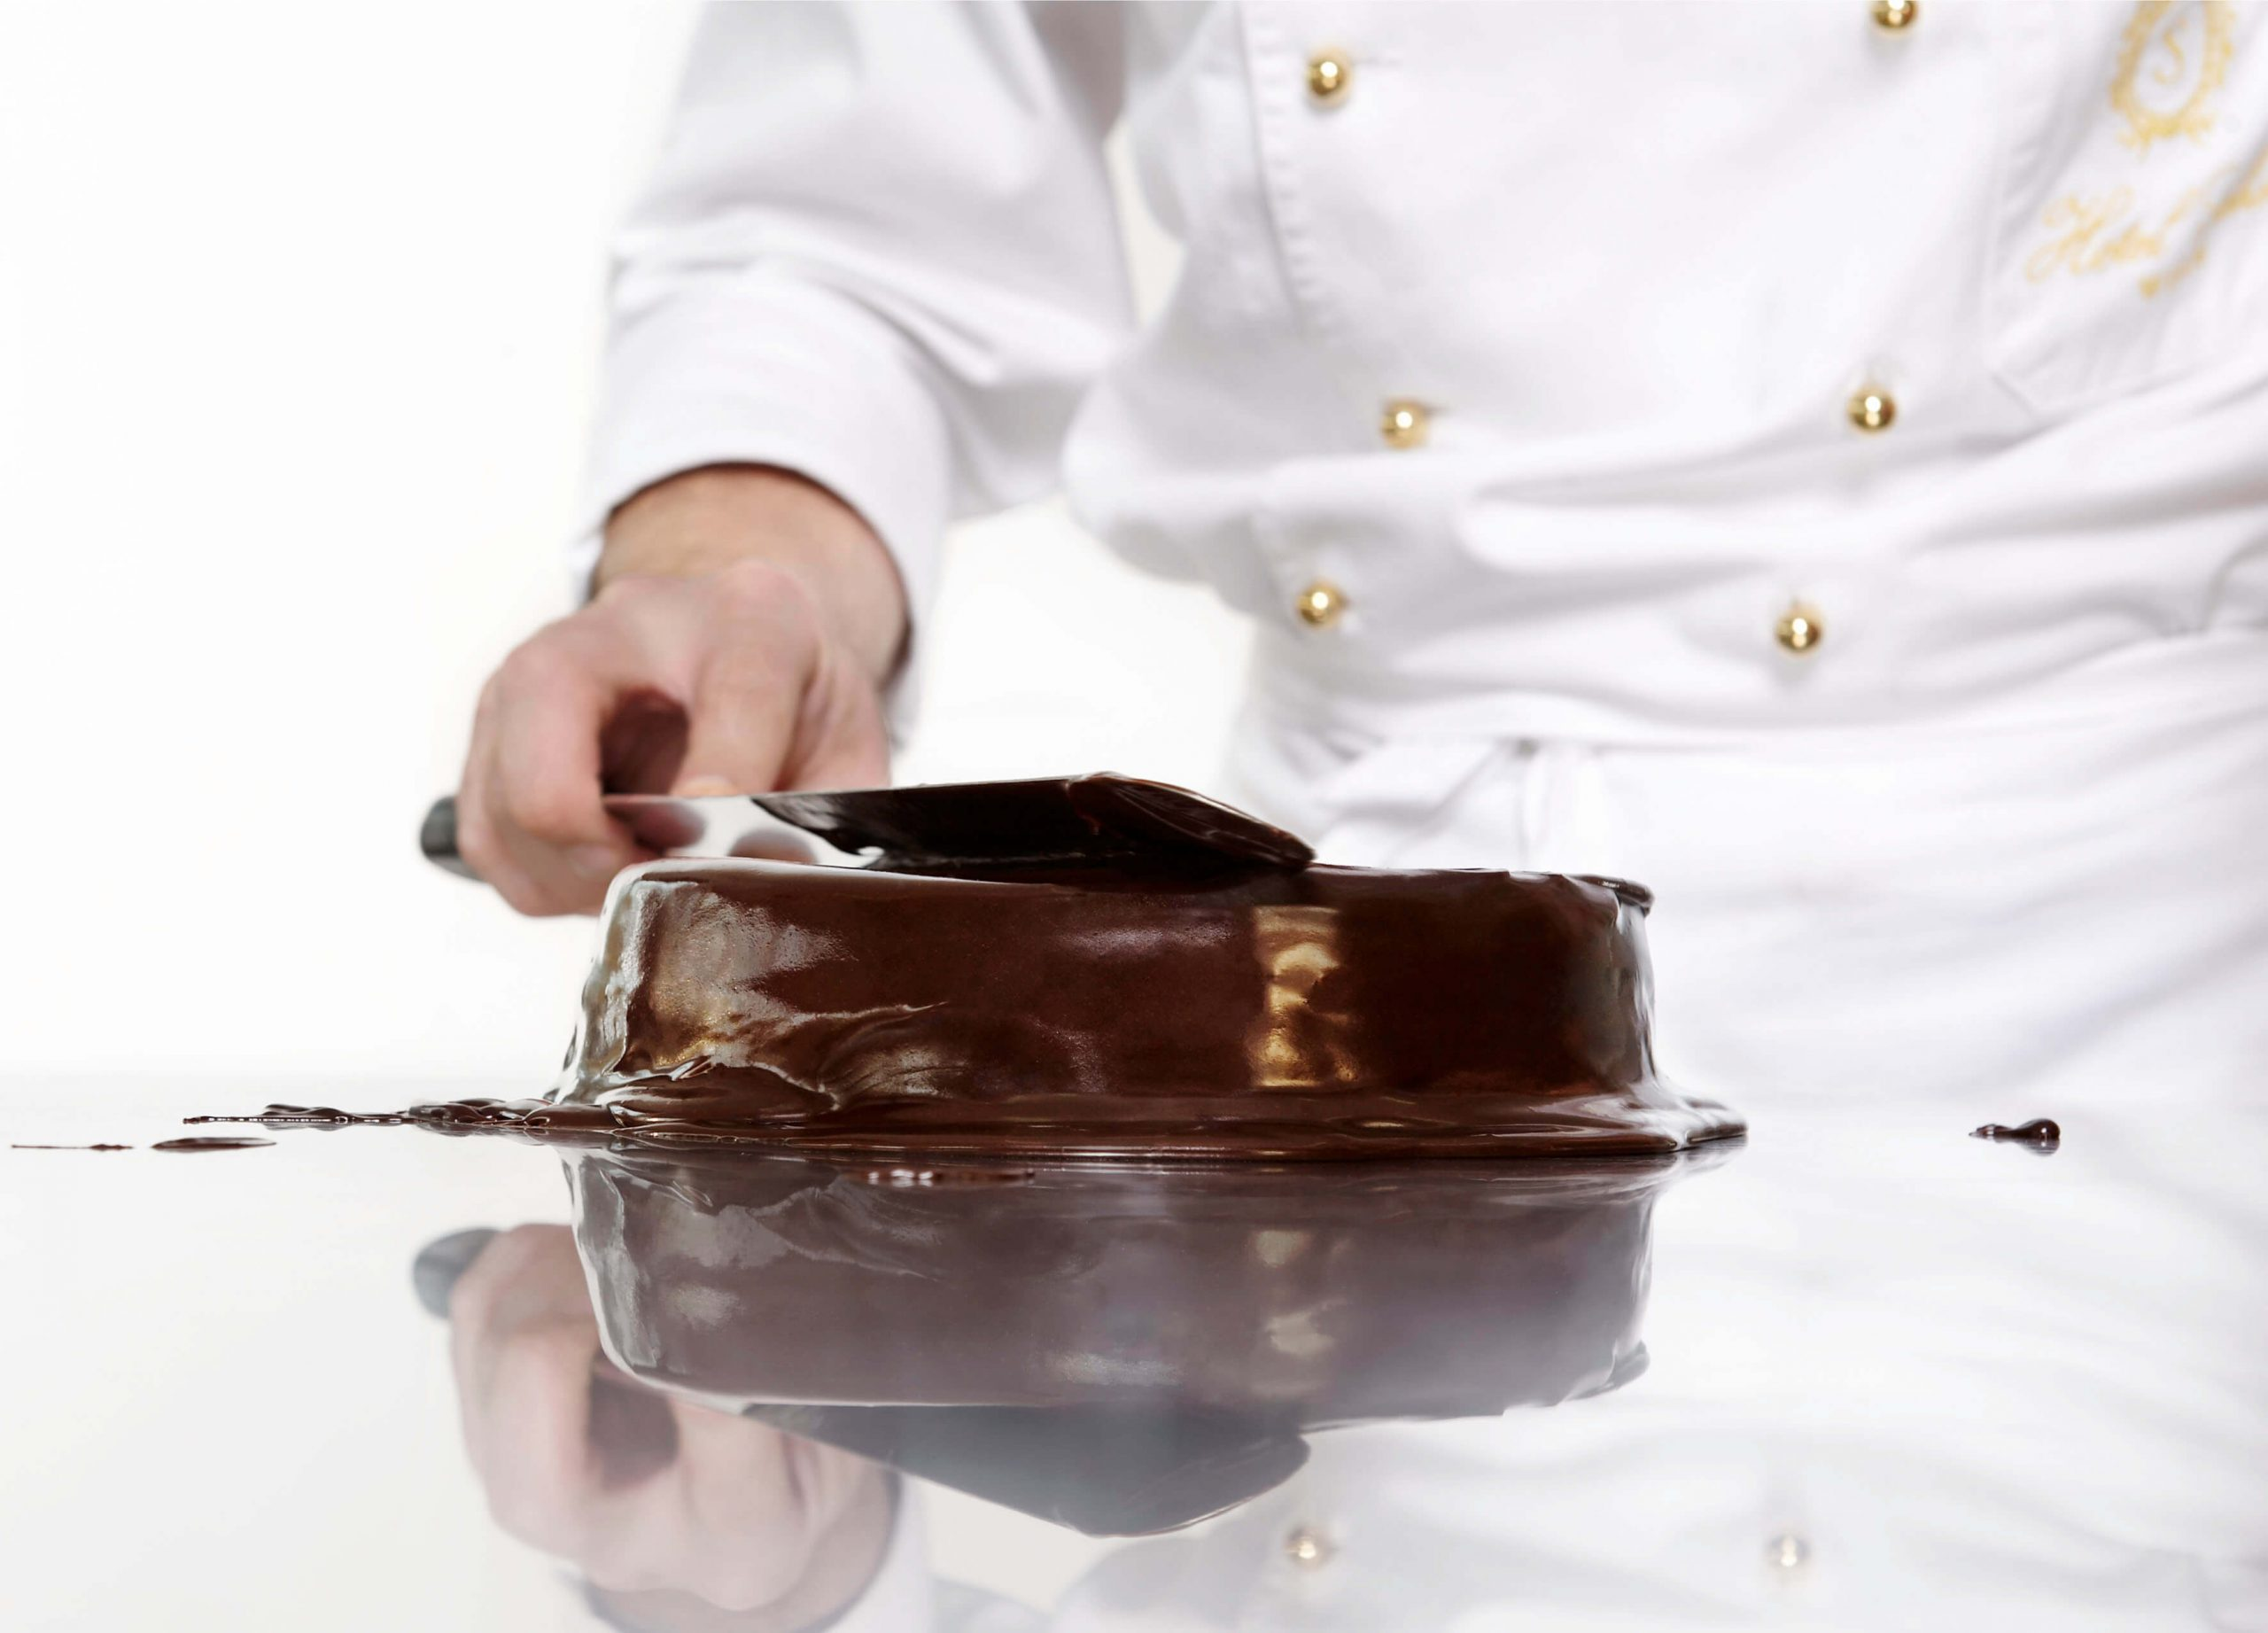 making of a Sachertorte